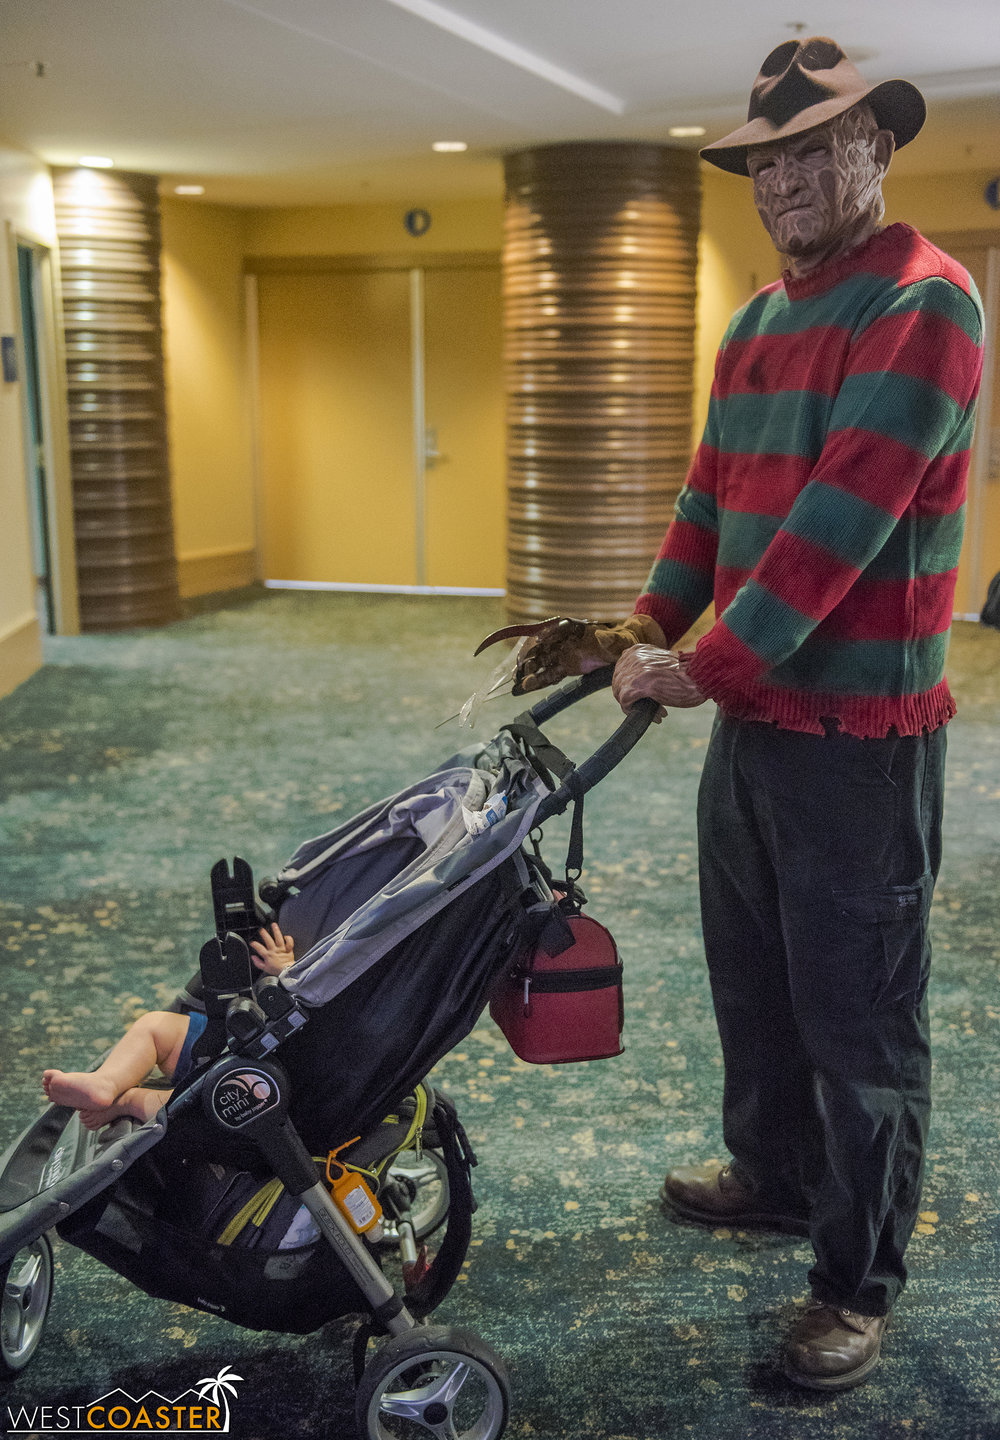 This was the only place where Freddy Krueger pushing an actual baby in a stroller would not be considered disturbing and worthy of calling the police.